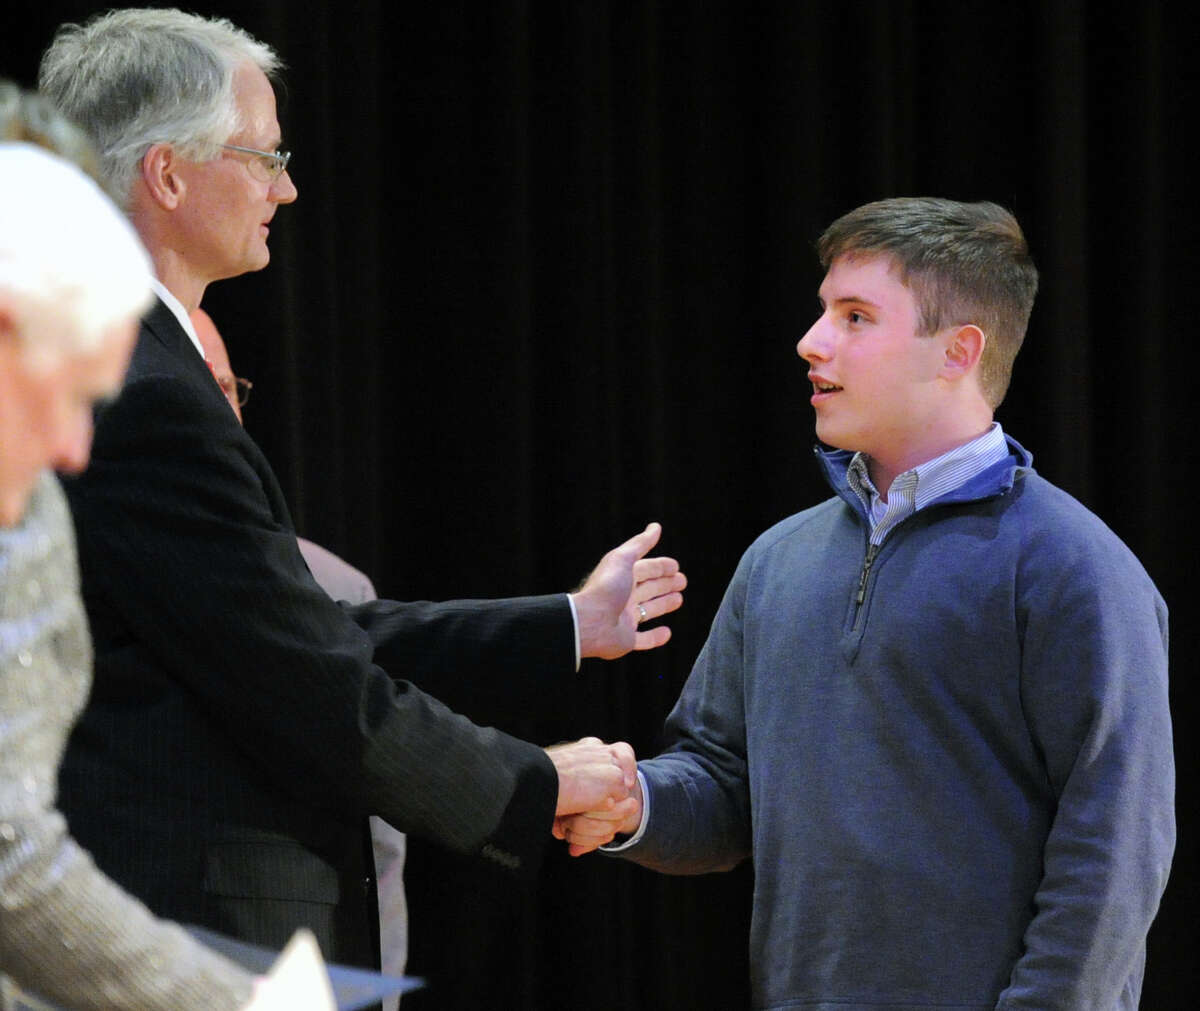 Superintendent of Schools William McKersie shakes hands with Greenwich High School student Peter Russell, right, who was one of the students honored during the Greenwich Public Schools Community Service Awards ceremony at Western Middle School in Greenwich, Conn., Tuesday, March 24, 2015. The awards are given to students based on participation in service activities that help to improve both their school and community.